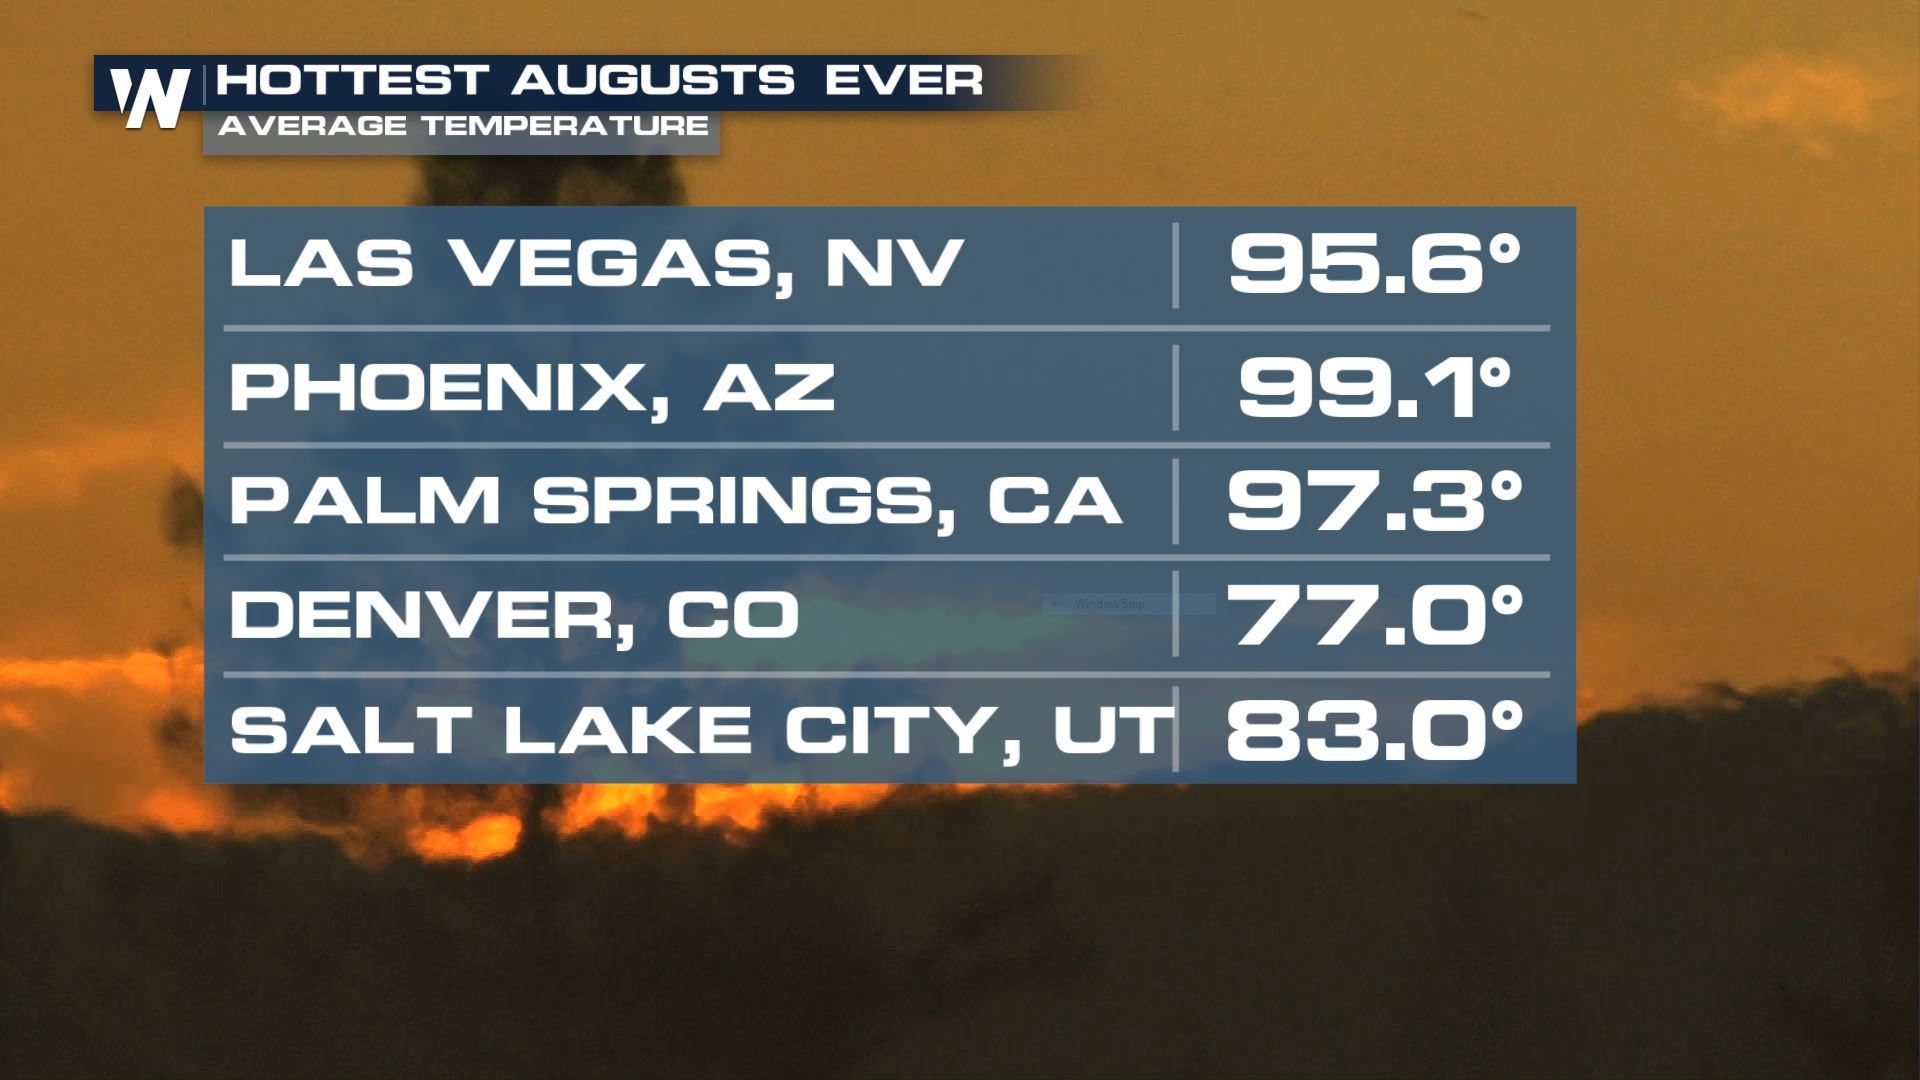 August brought record heat across the western US